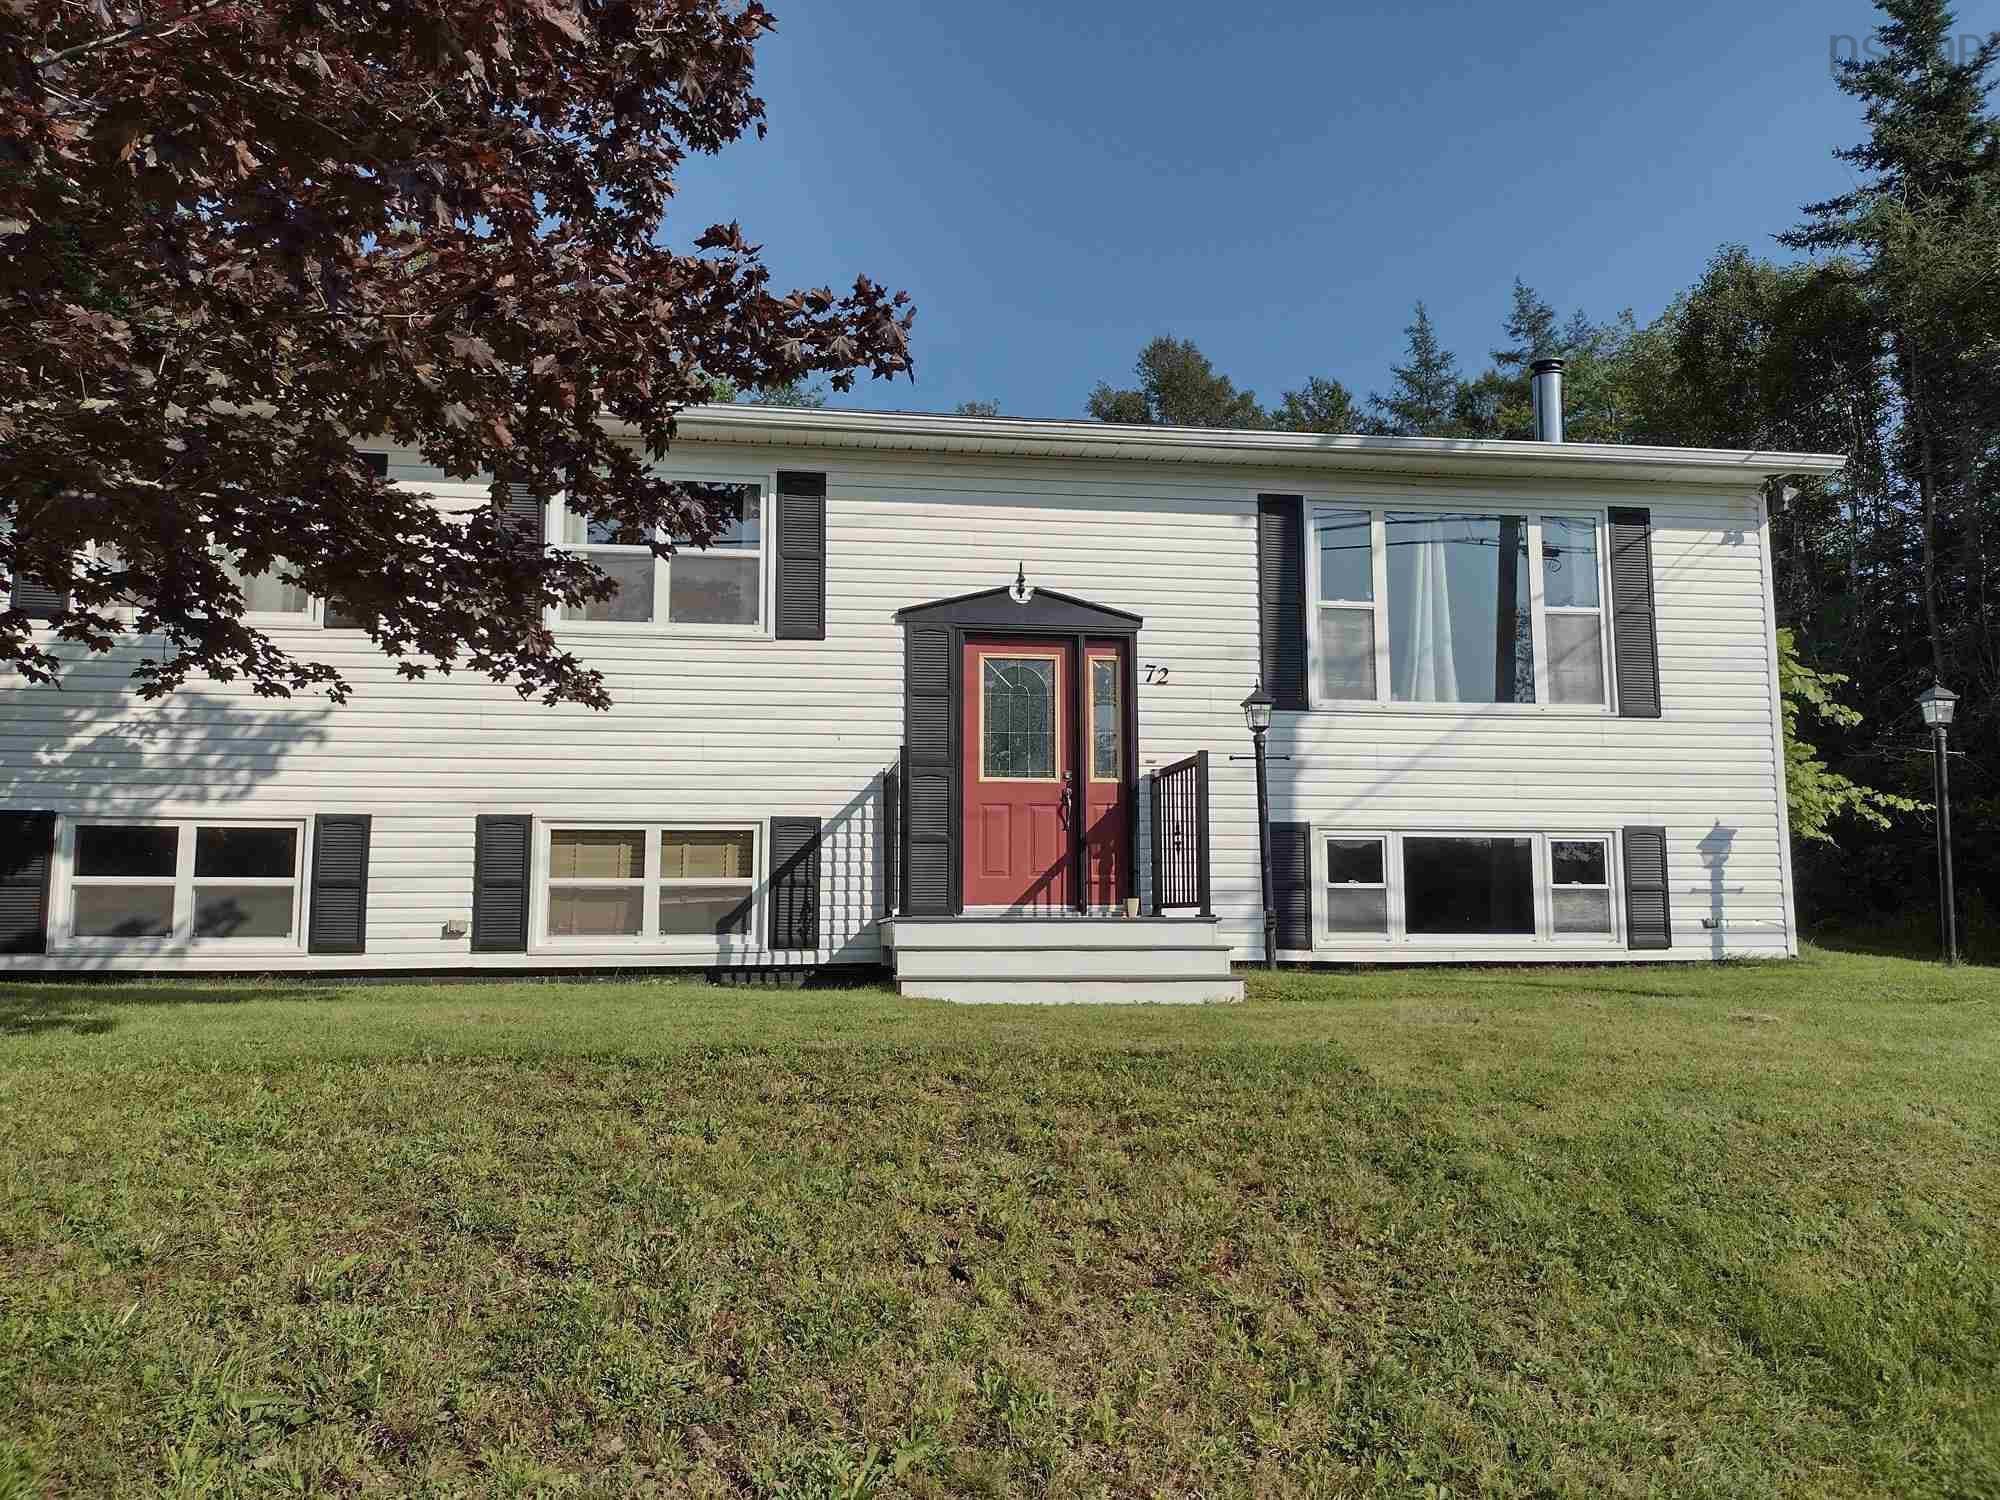 Main Photo: 72 Old Road Hill in Sherbrooke: 303-Guysborough County Residential for sale (Highland Region)  : MLS®# 202121825